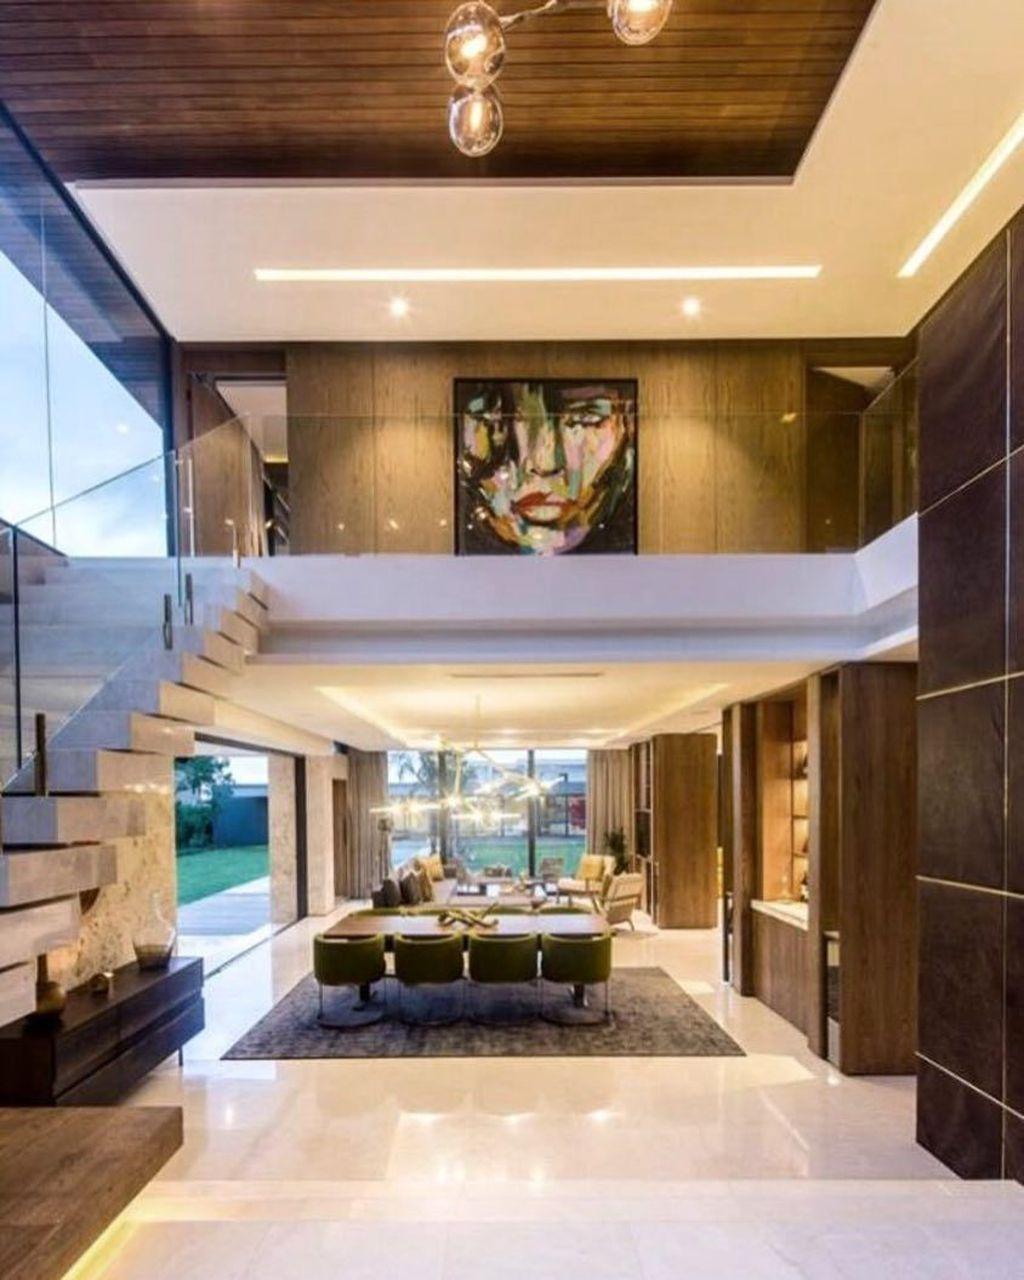 Marvelous Interior Design Ideas For Home That Looks Cool 03